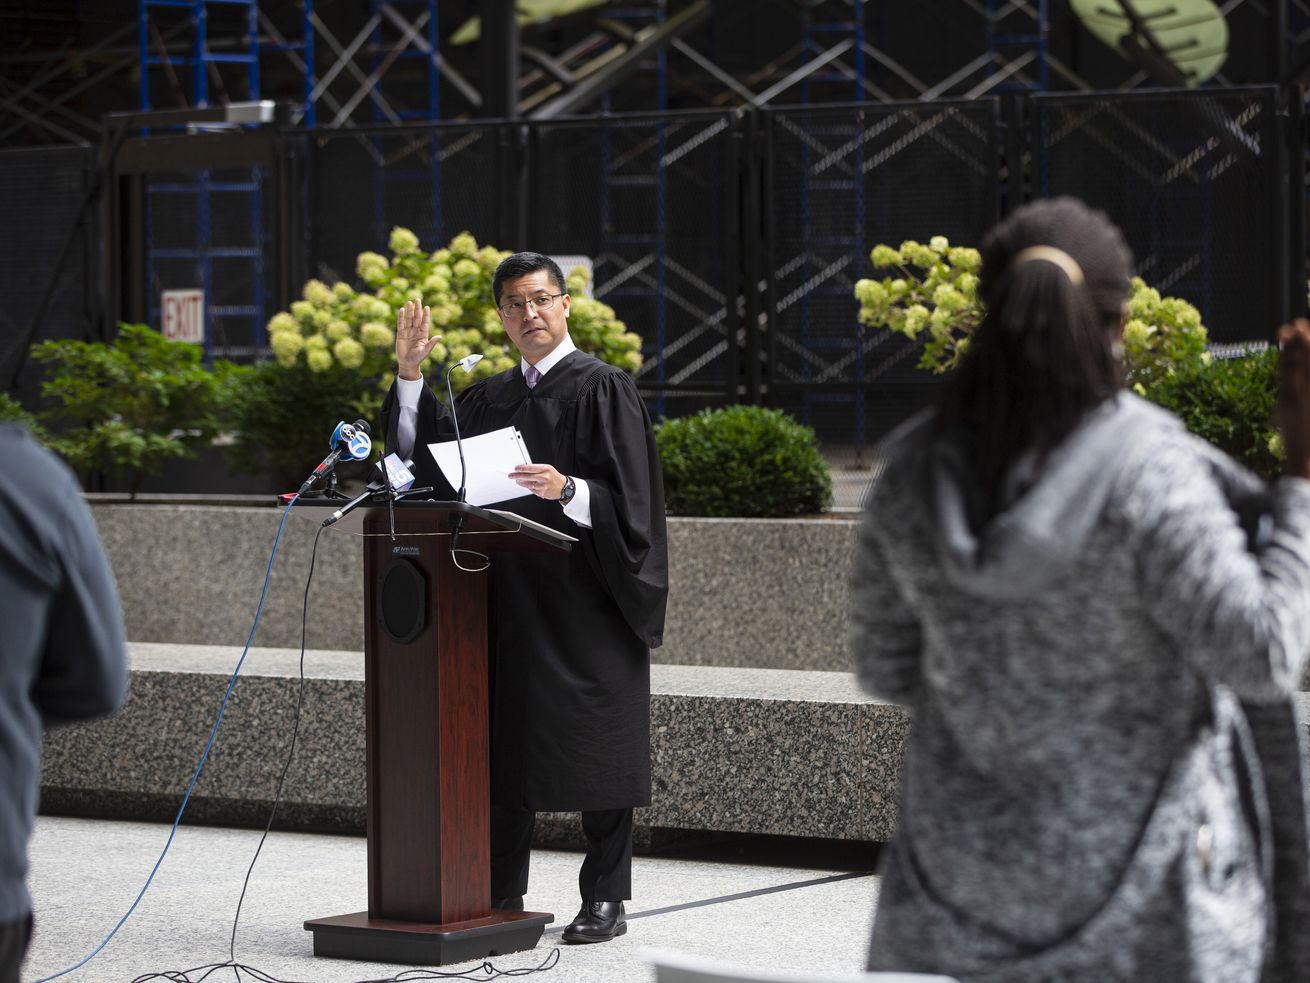 Federal judge blocks increase in fees for citizenship, immigration applications